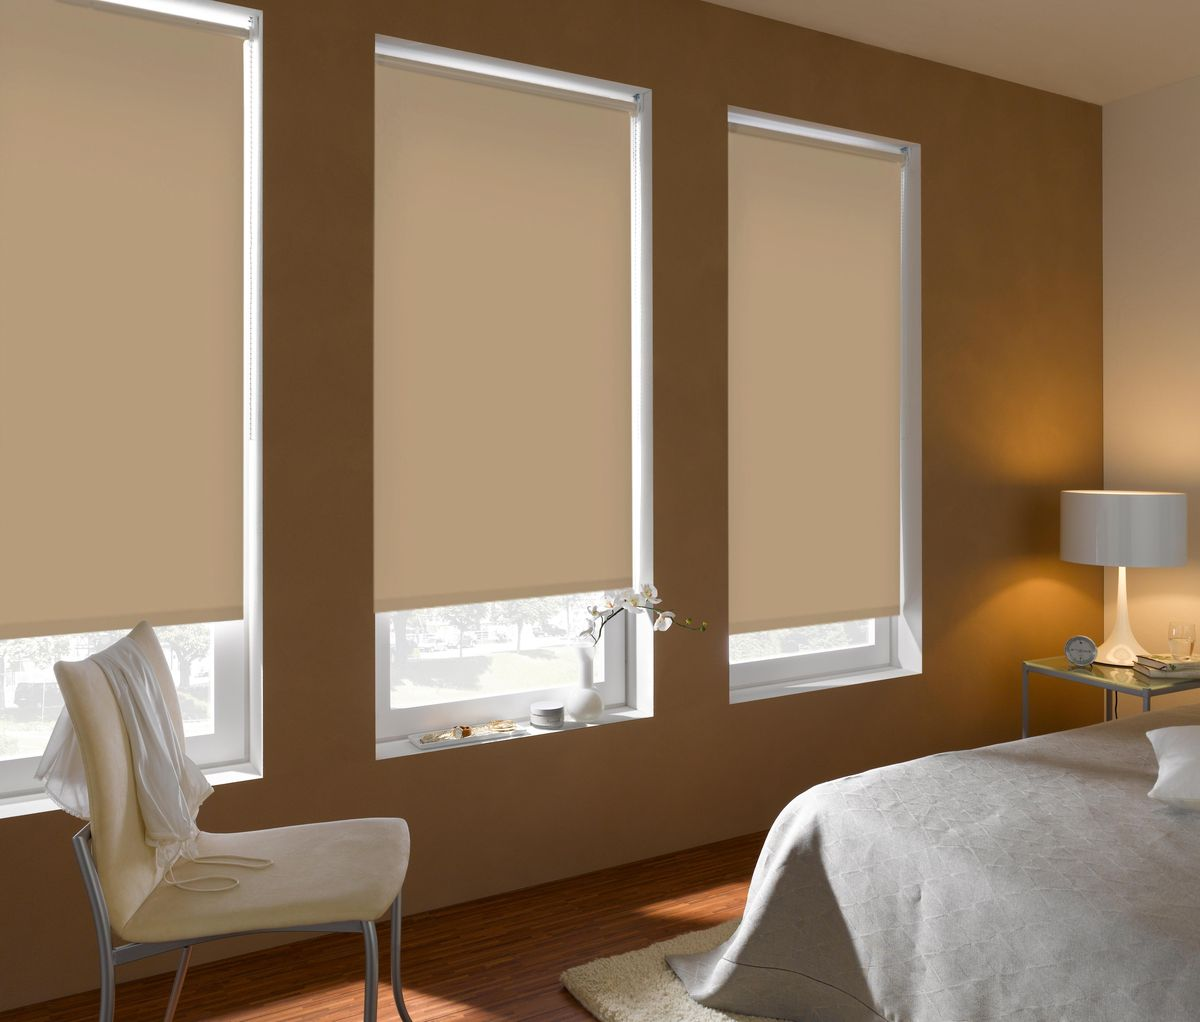 Light colored walls for cozy bedroom with three windows